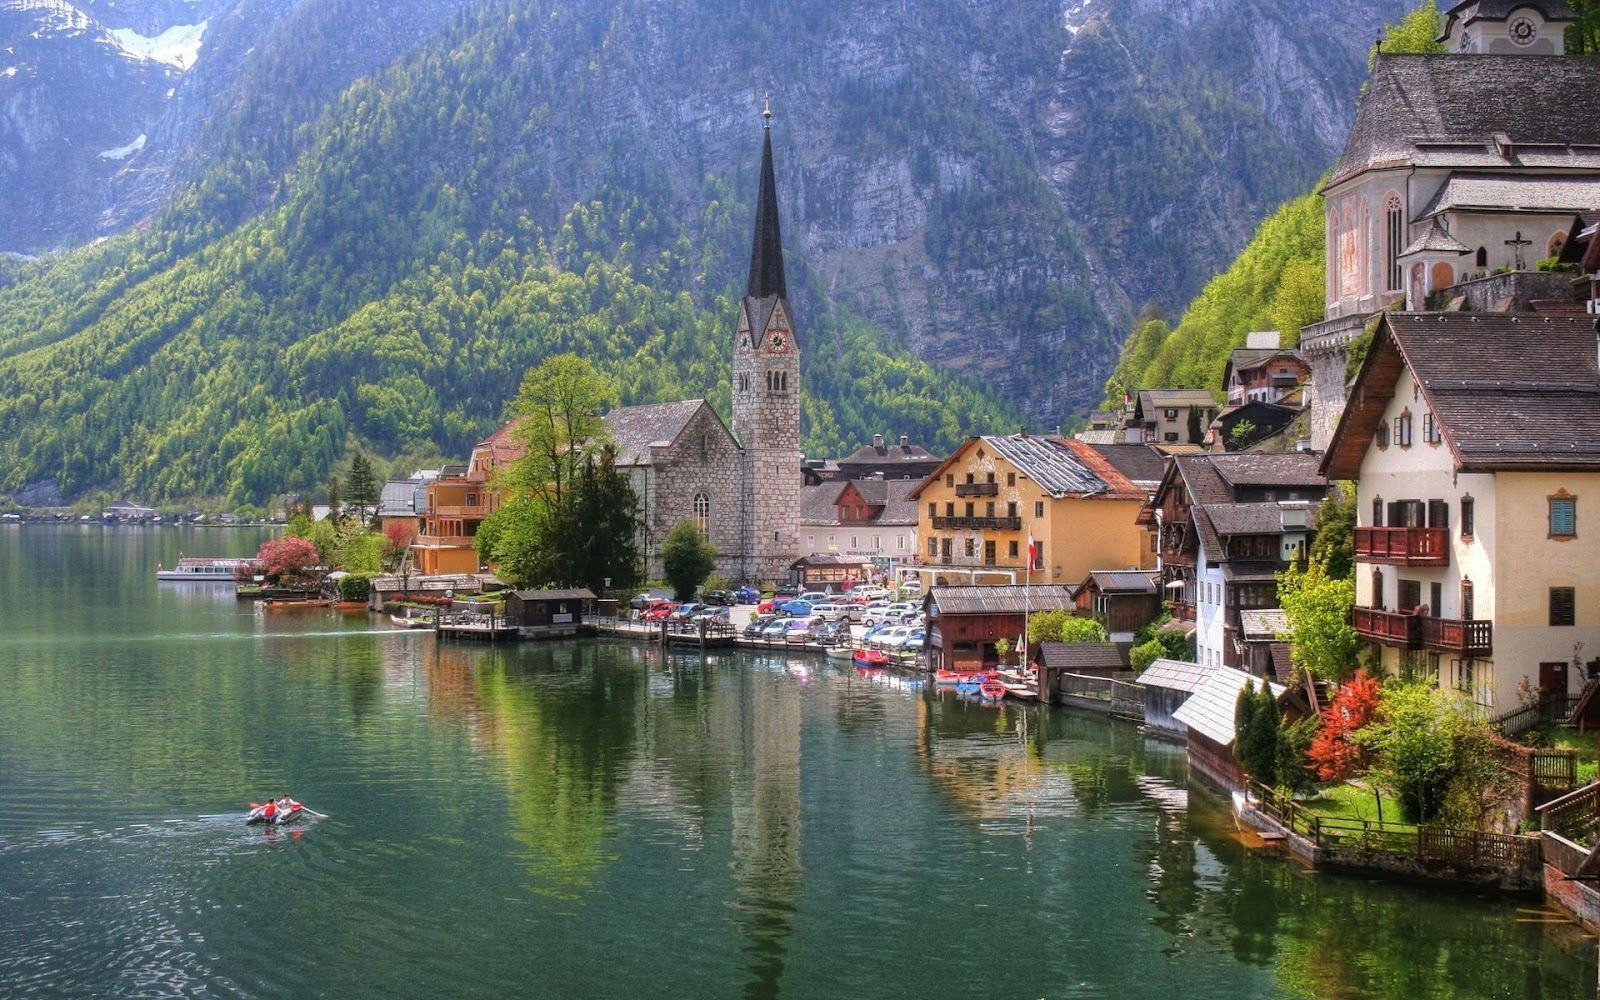 Travel Trip Journey: Hallstatt, Austria